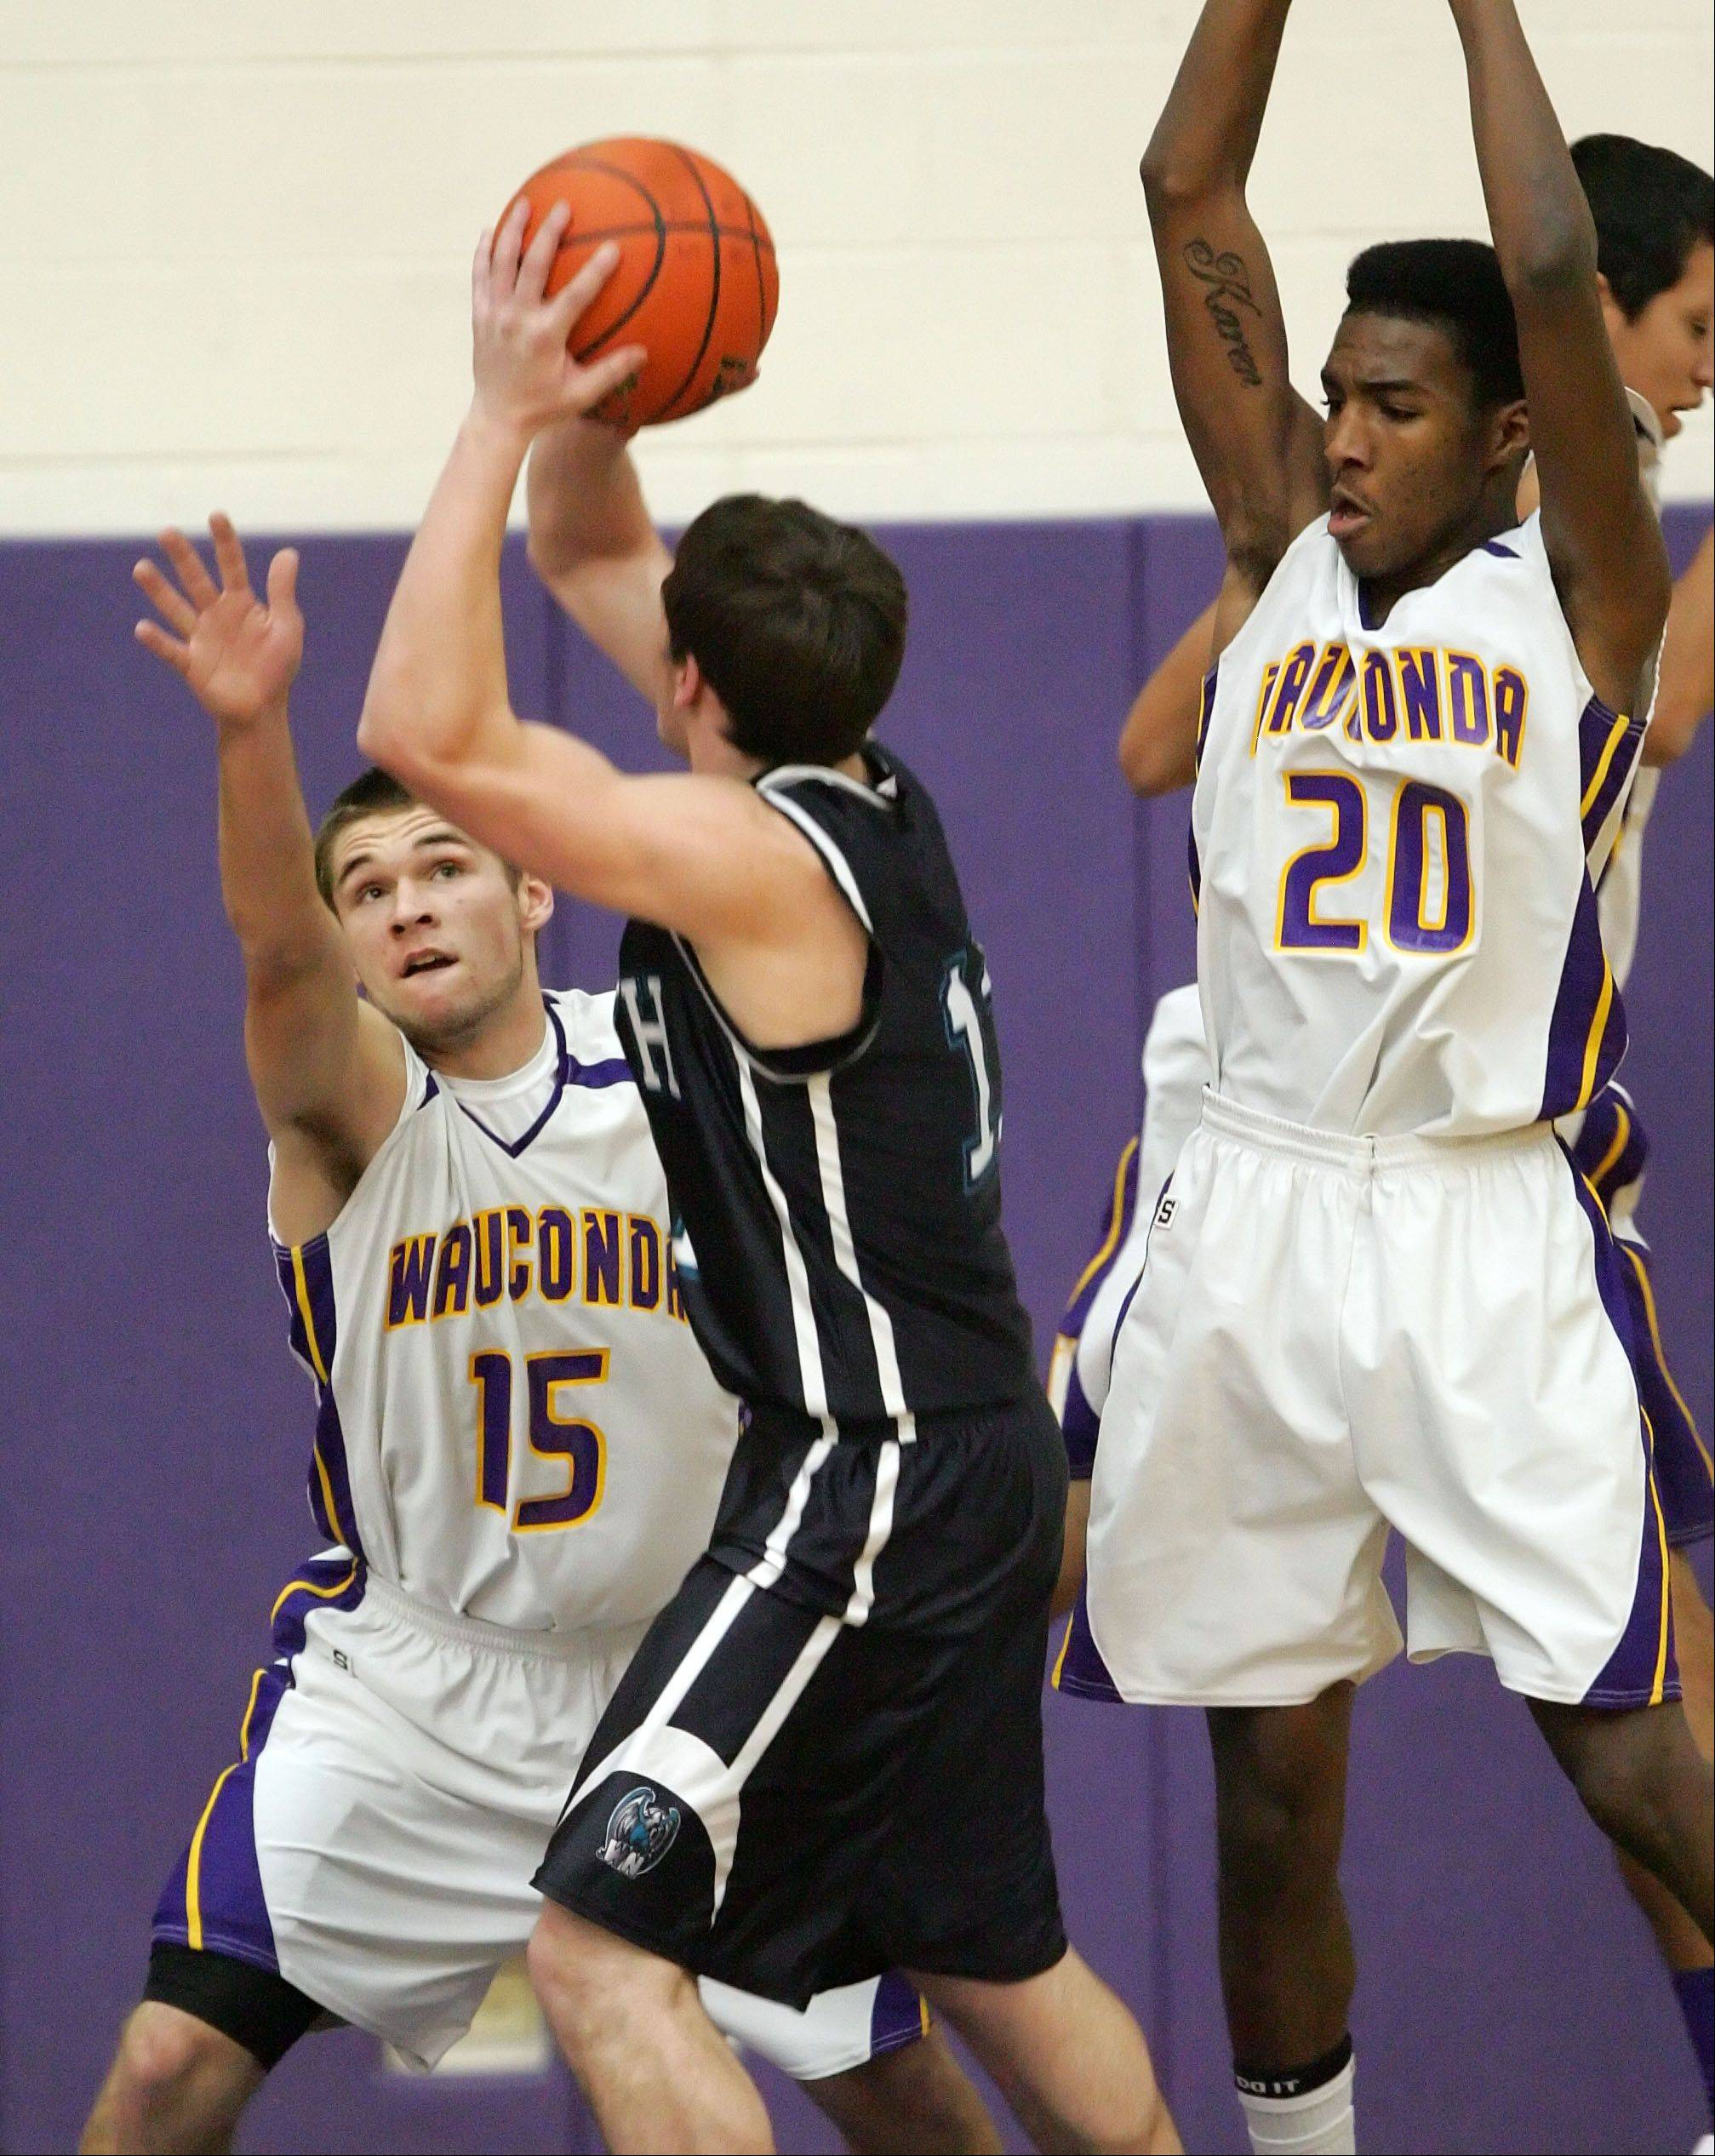 Wauconda's Keith Blomberg and Devon Kingdefend against Woodstock North's Steven Whiting.